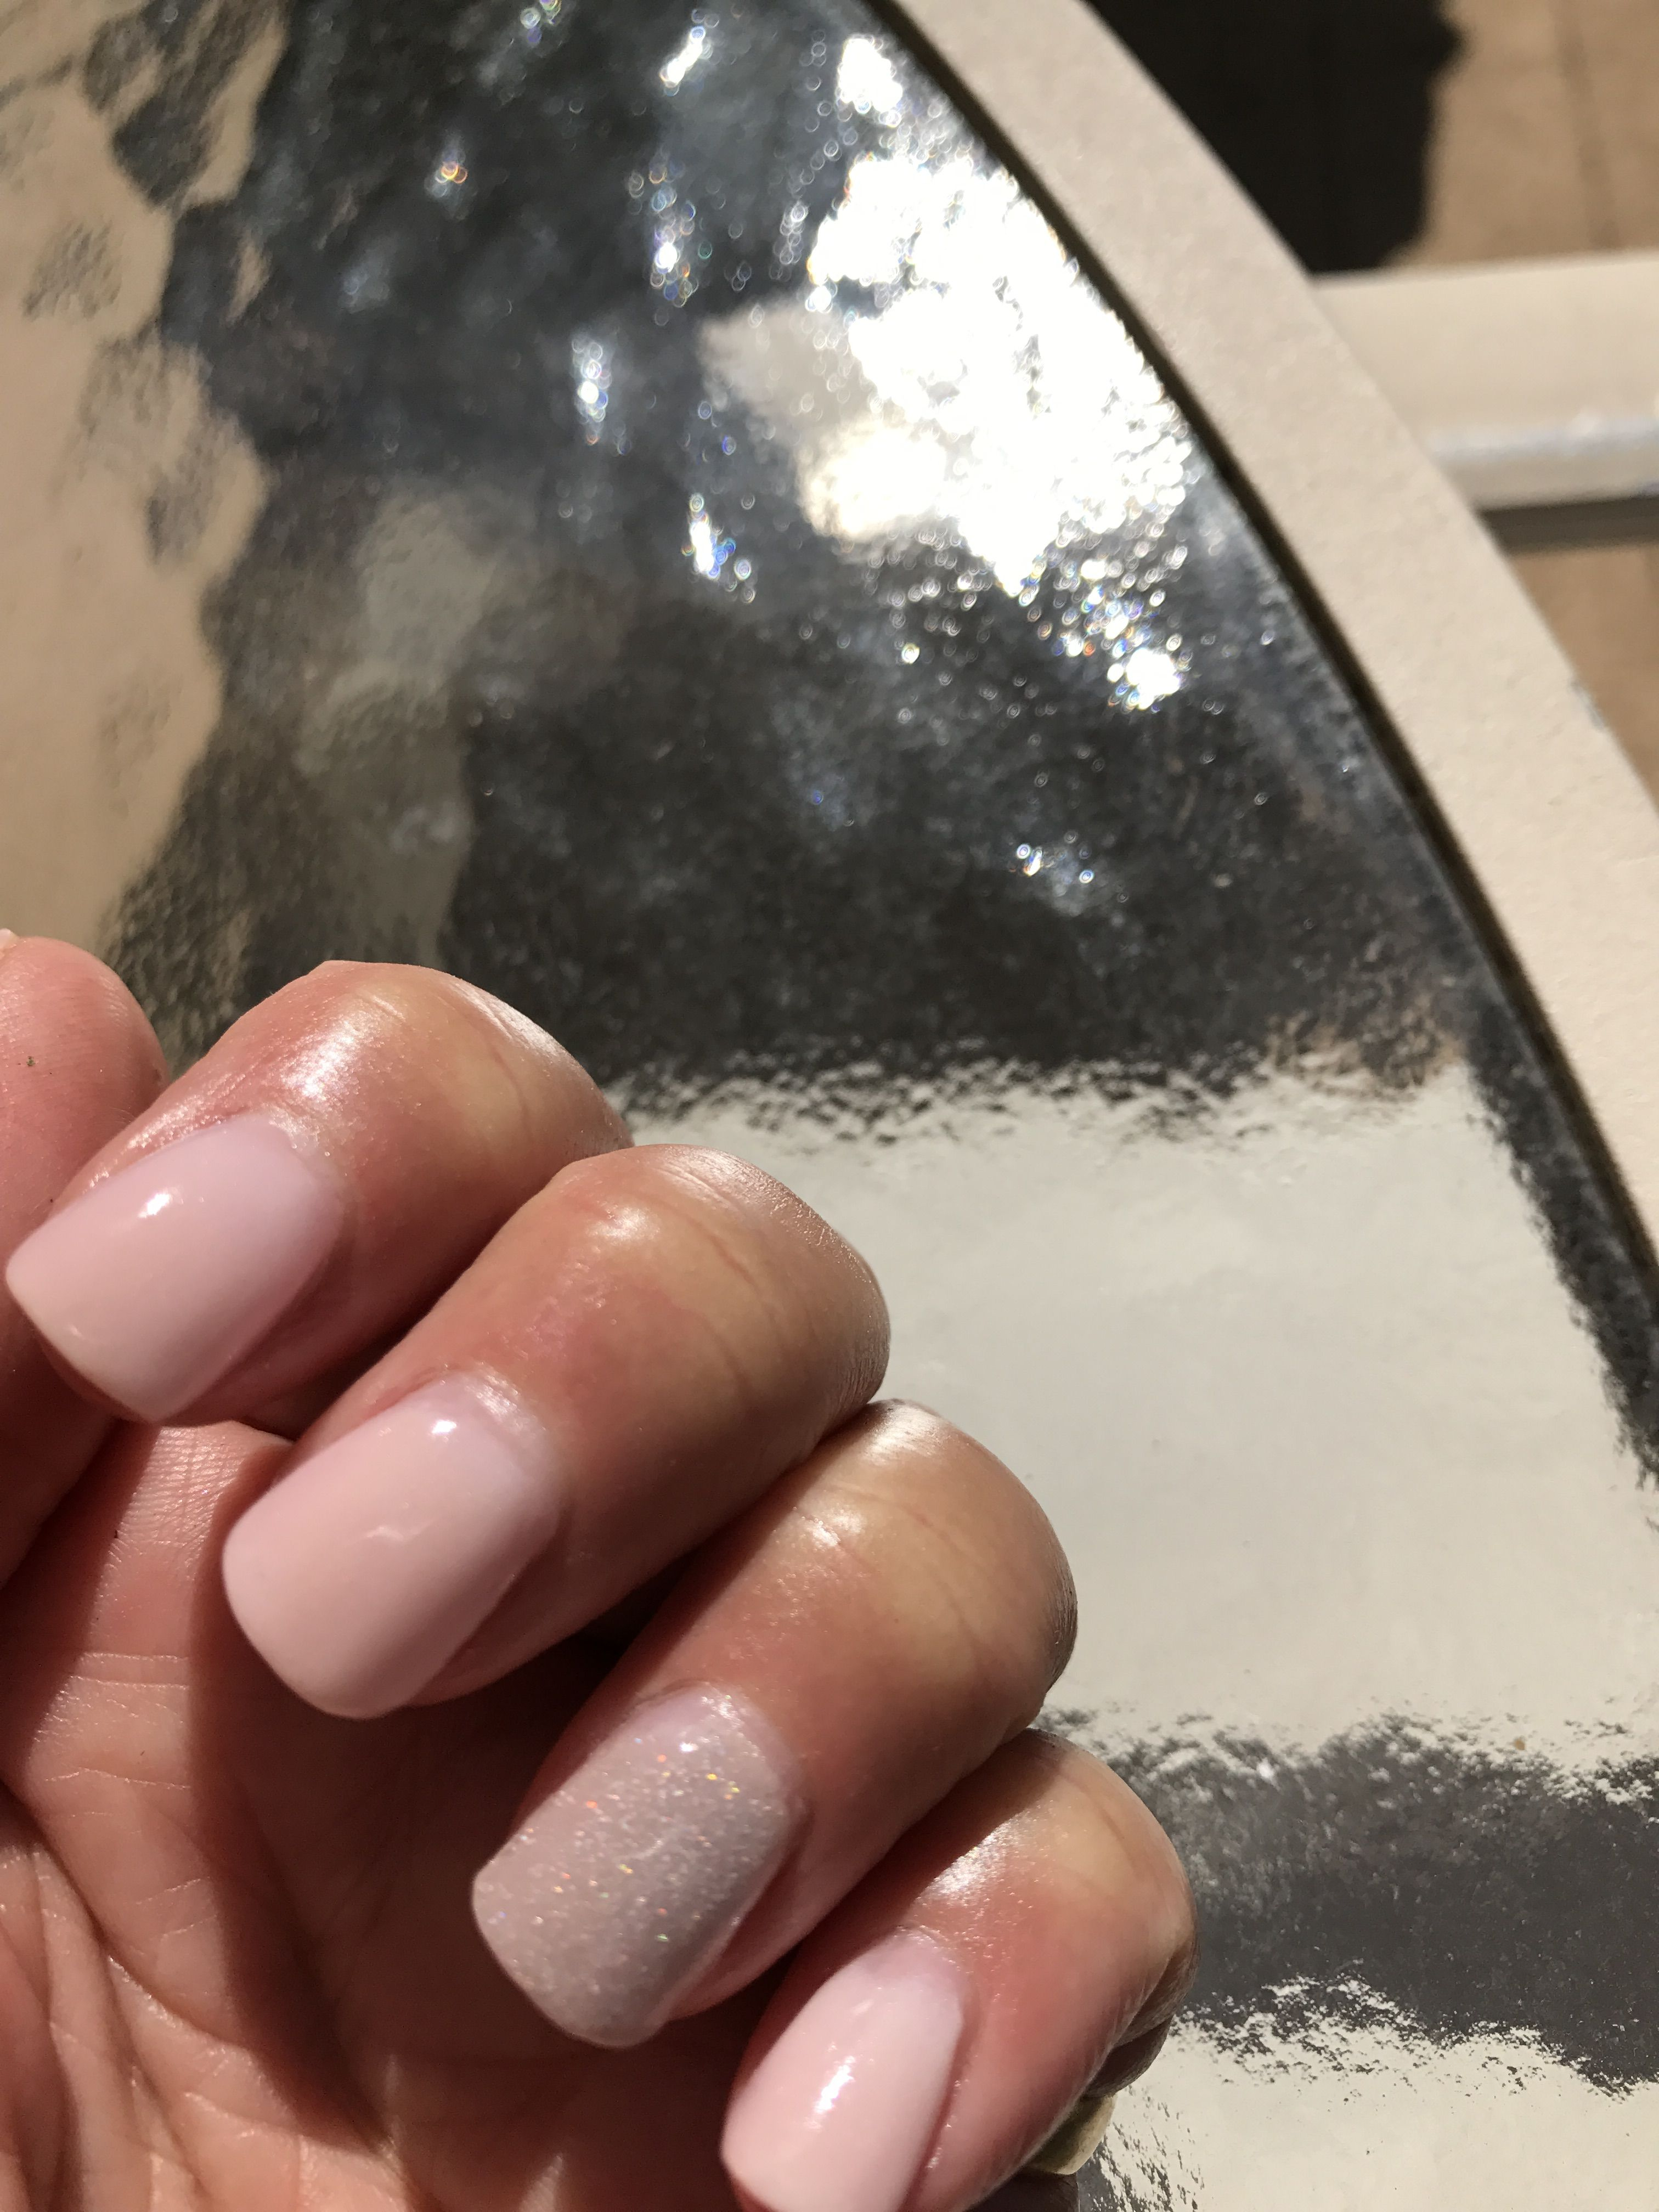 Revel nails dipping powder 2 thin dips of Marion, followed by ...